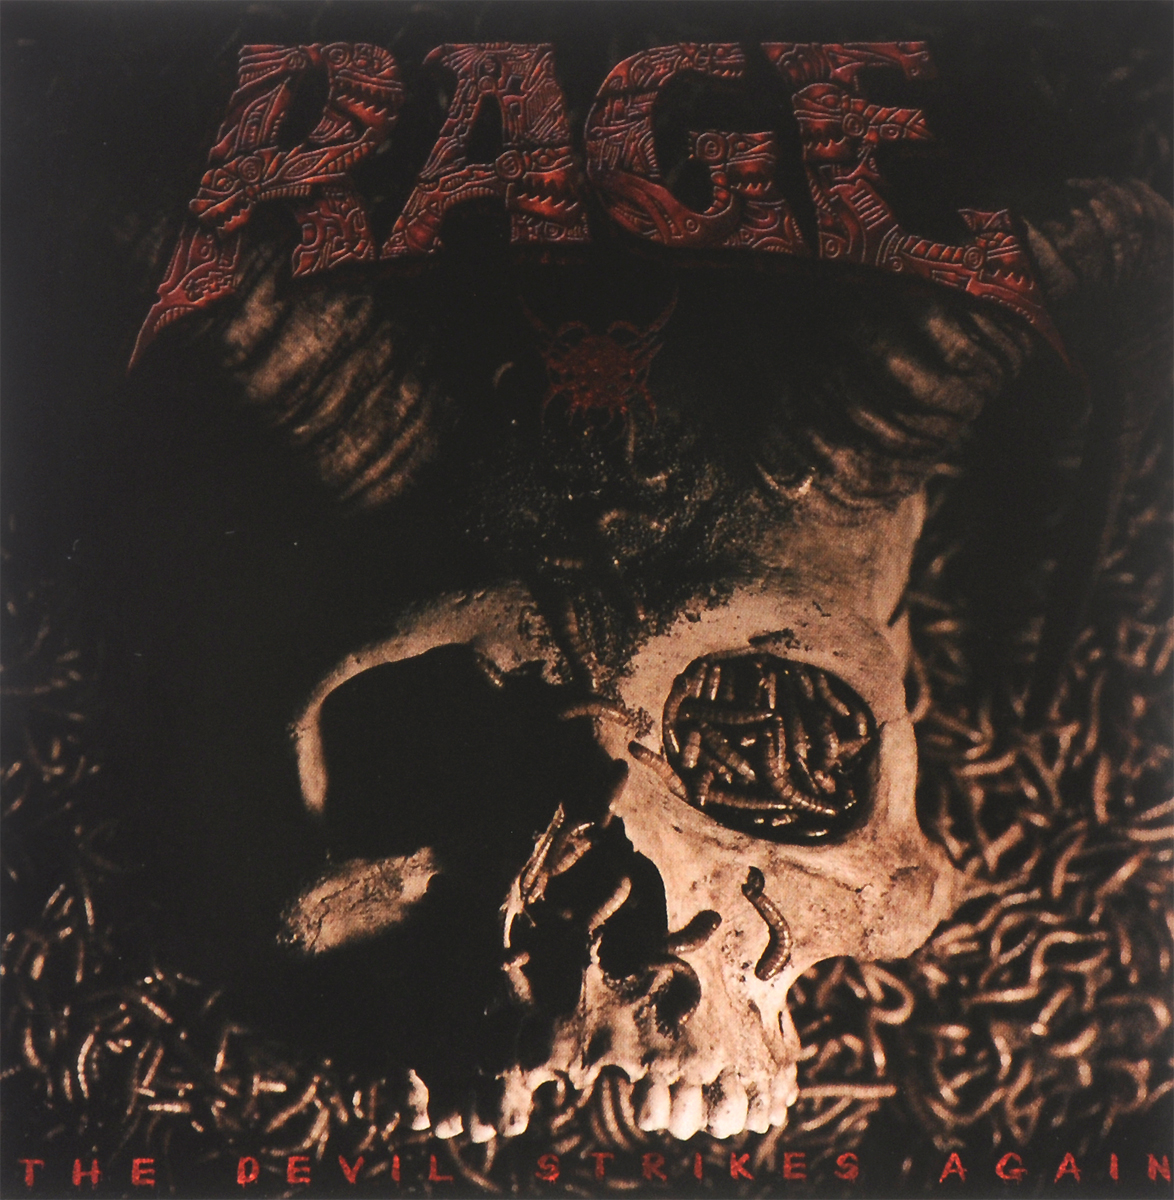 Rage Rage. The Devil Strikes Again rage rage the devil strikes again 2 lp colour